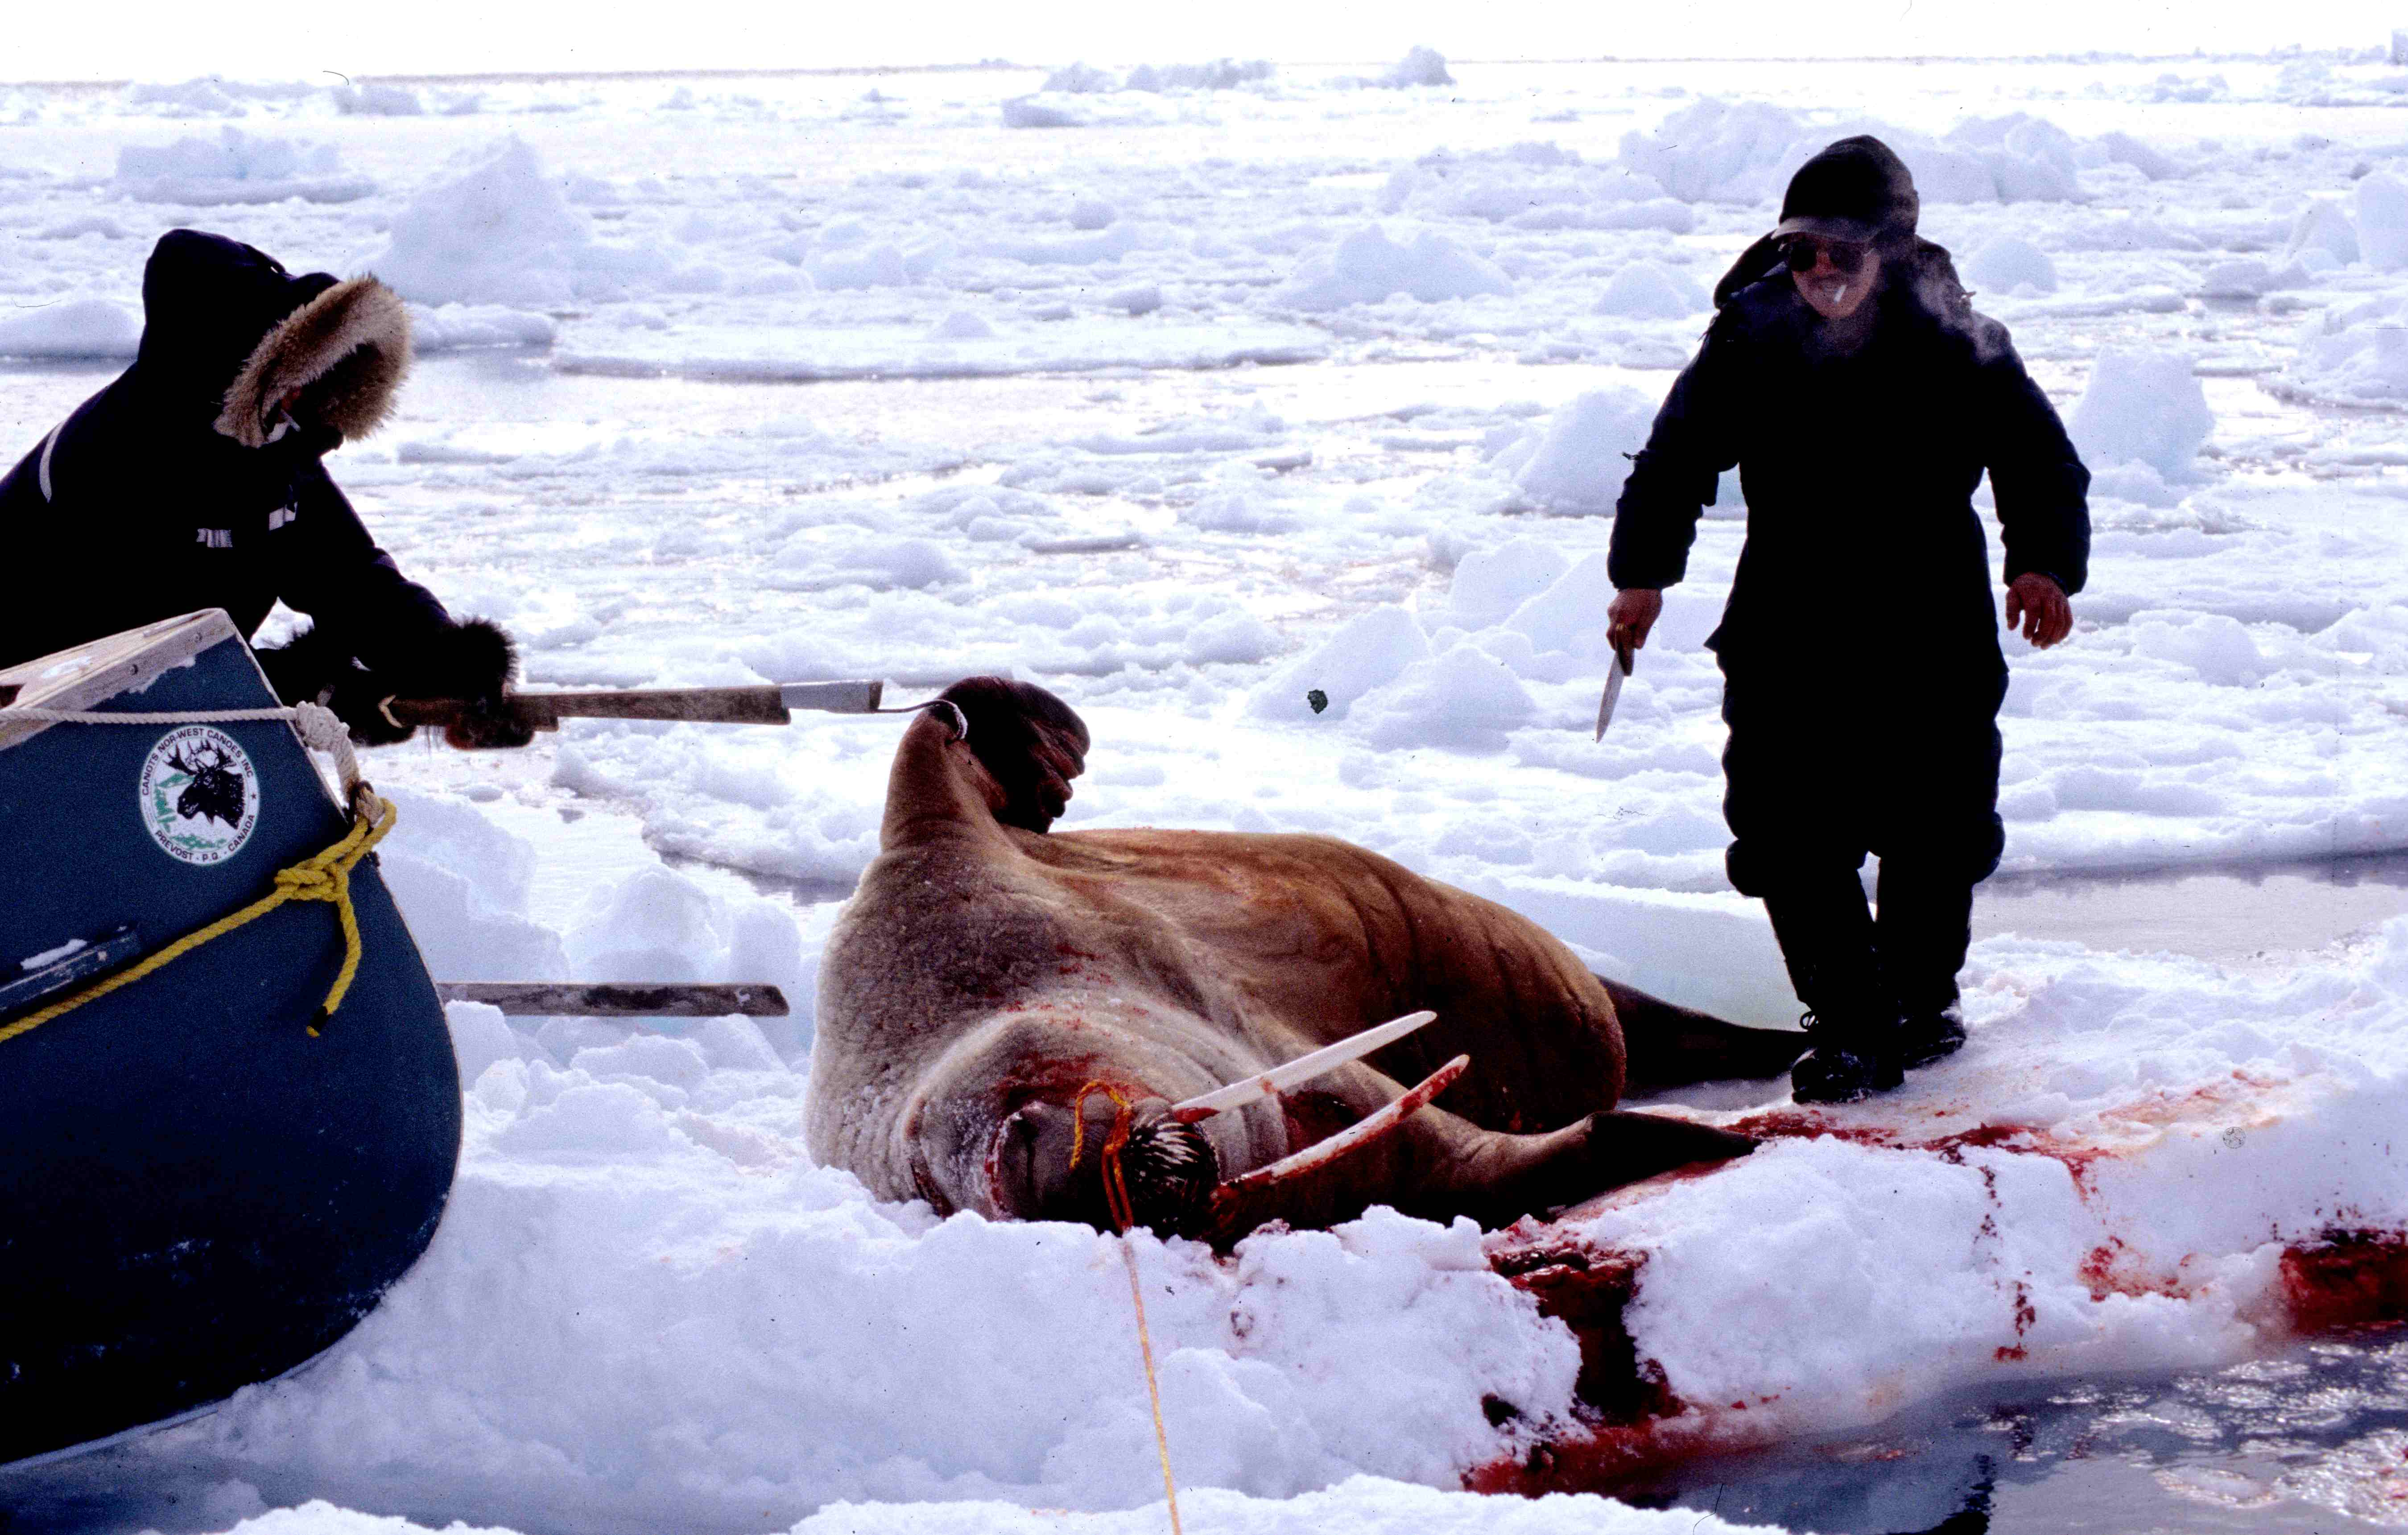 Facts About Inuit Food http://paleolithic.wikia.com/wiki/File:Inuit_hunting_walrus_att.jpg